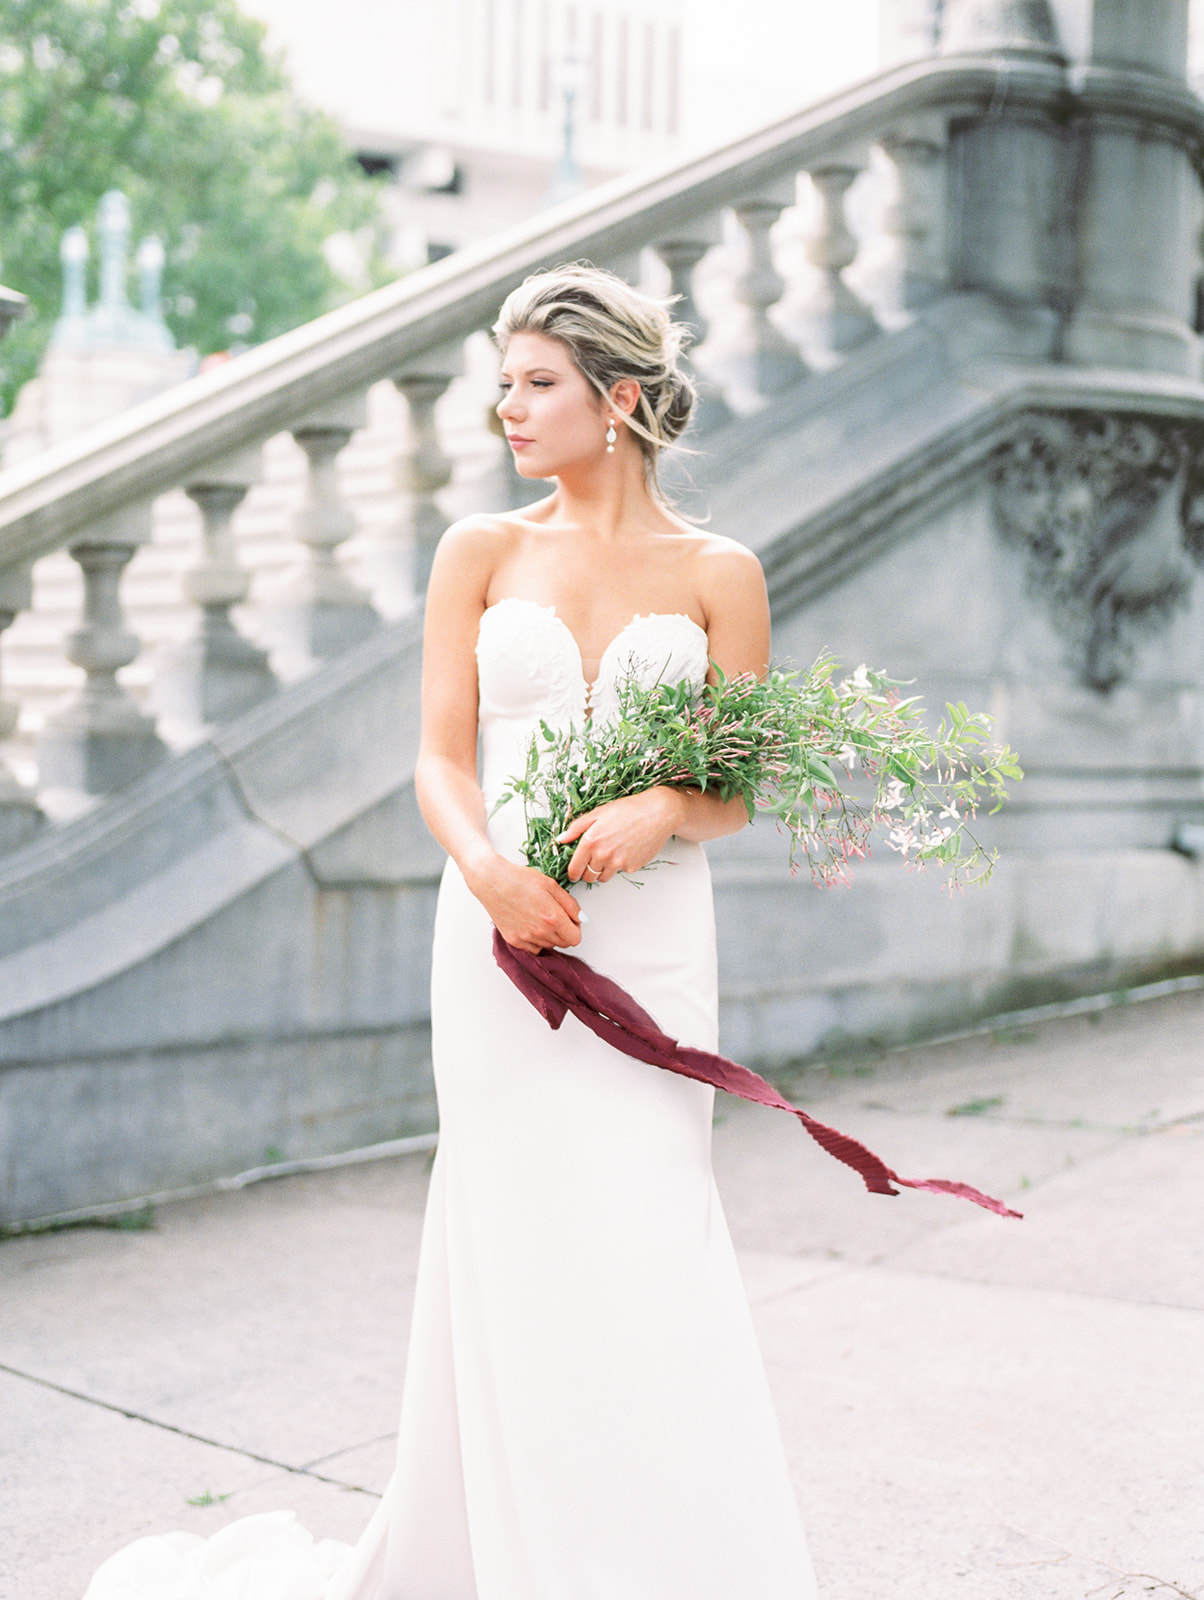 July Editorial with Angela_s Bridal by Michelle Lange Photography-75.jpg